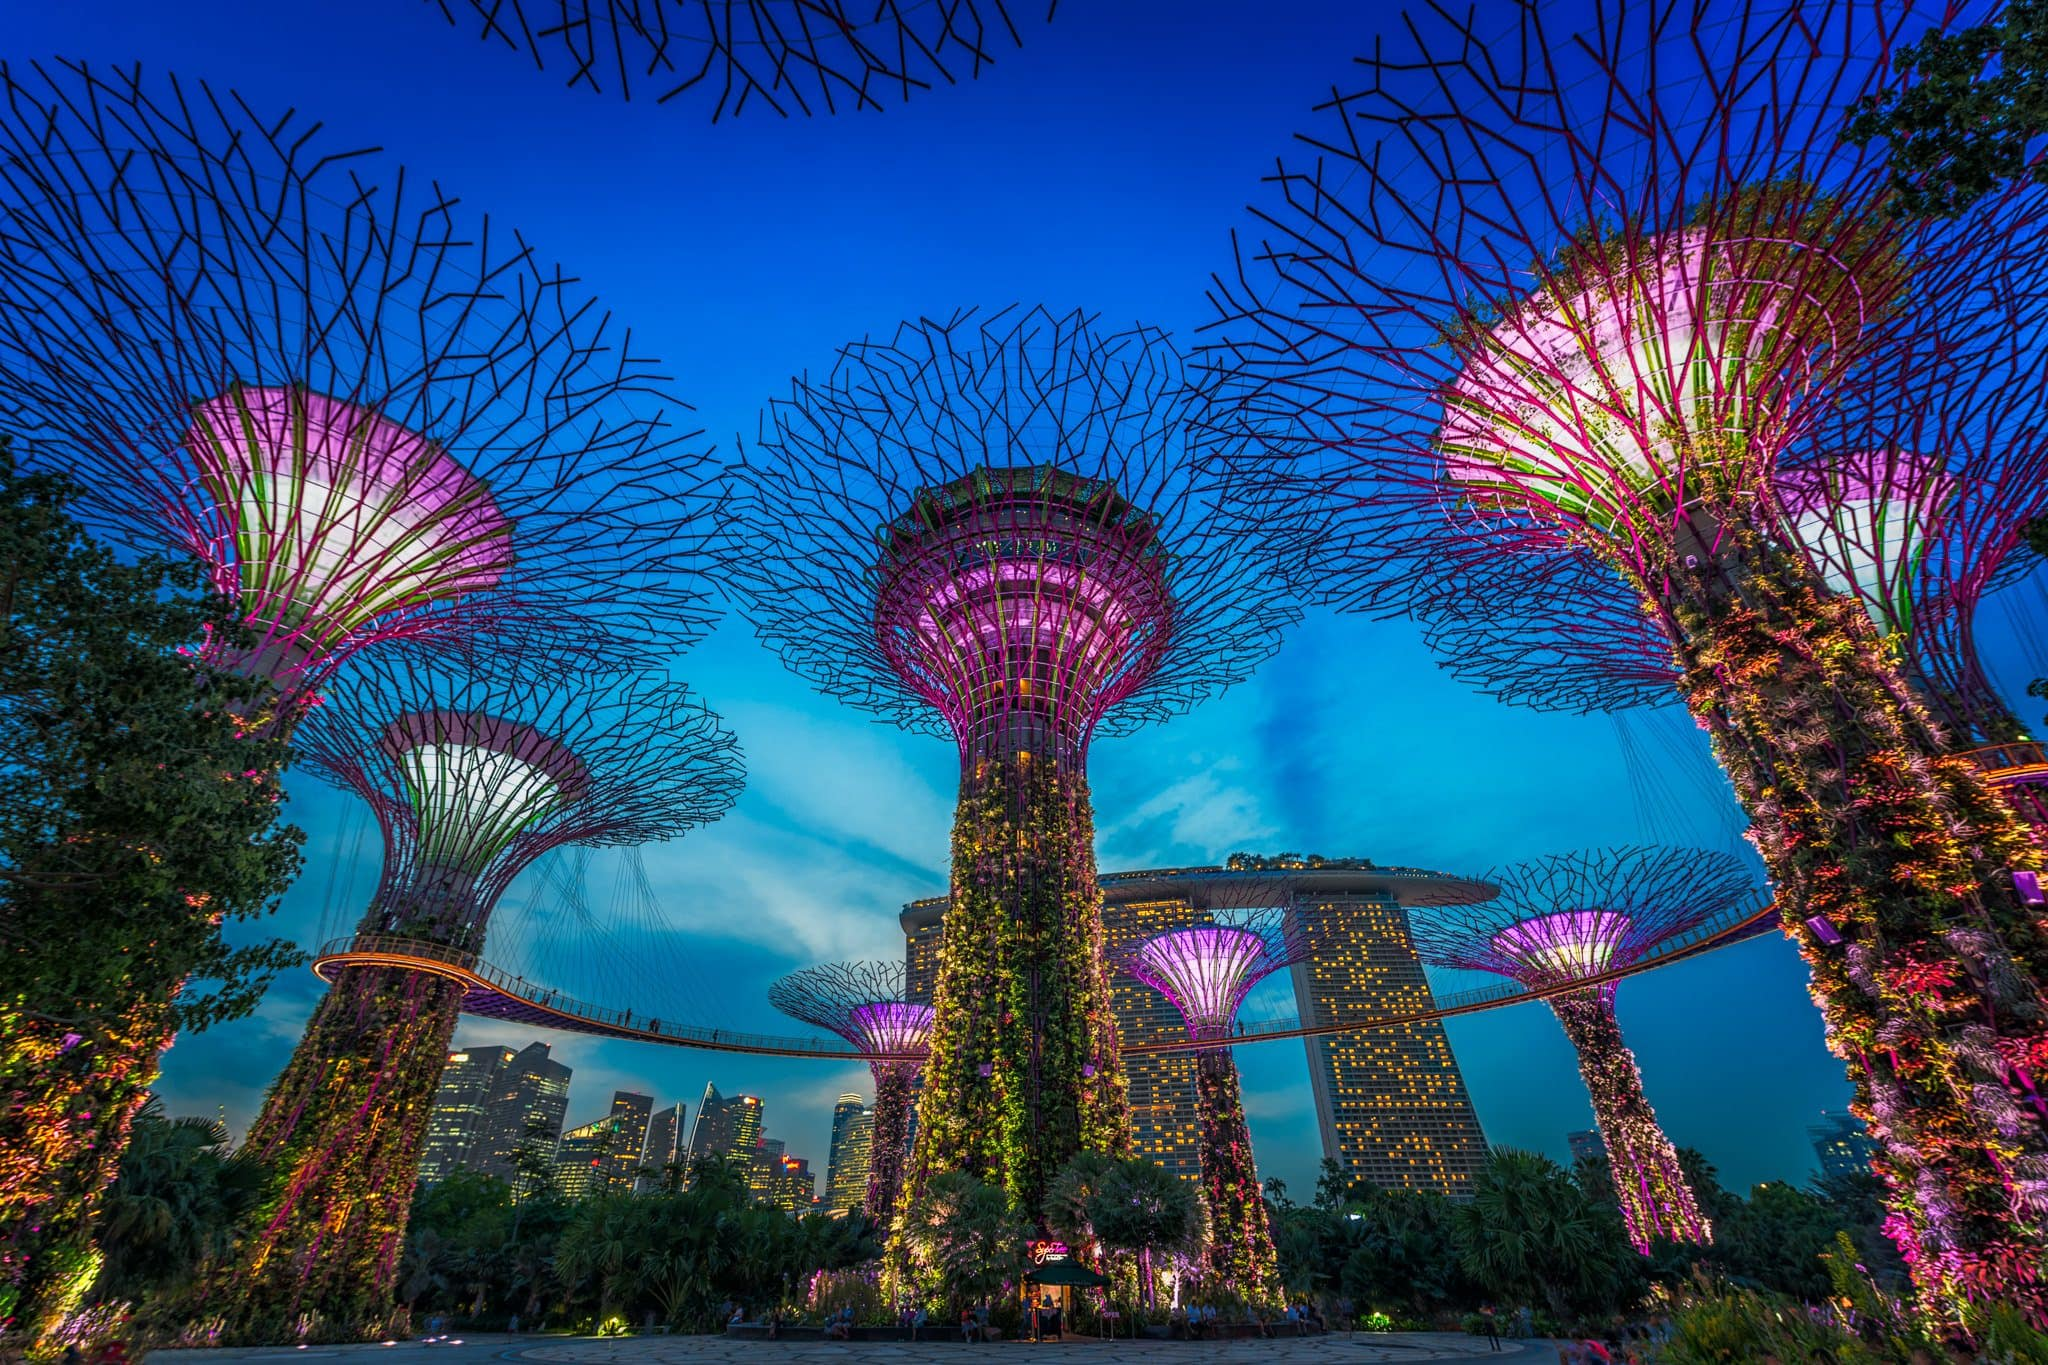 Photo of a colorful attraction that can be seen at the Singapore Gardens by the Bay.